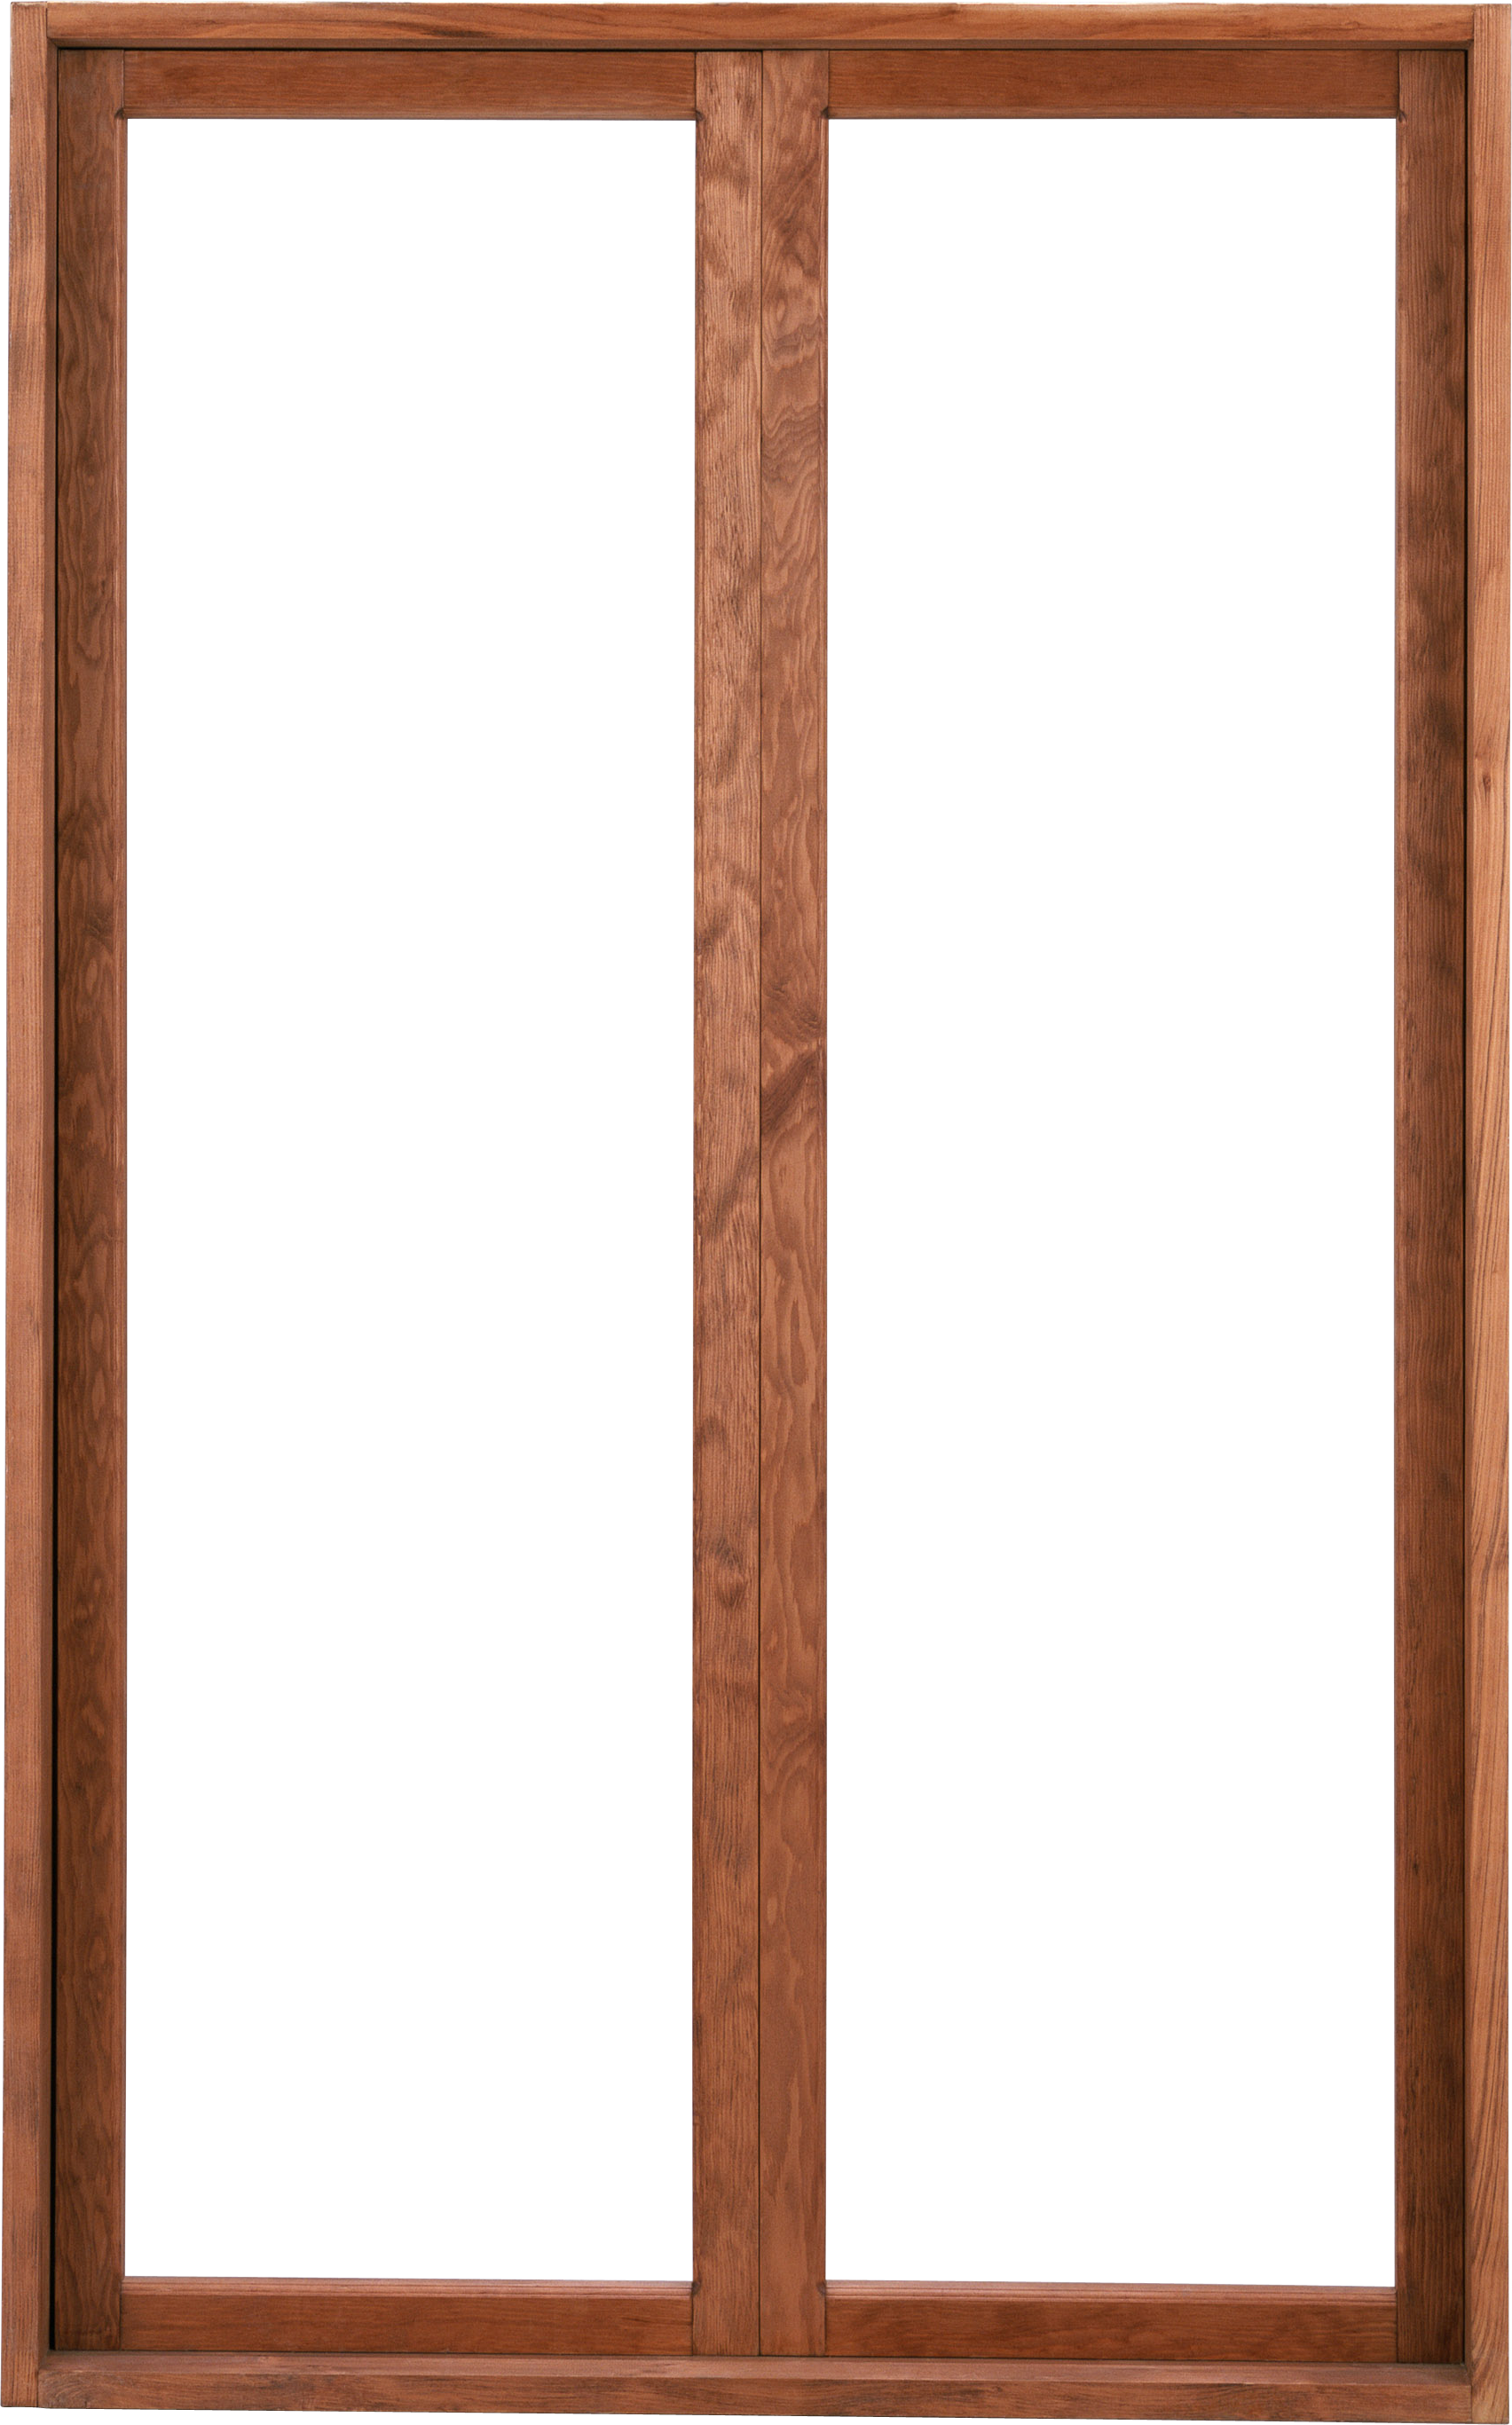 Window Png images | Download free Windows Transparent PNG